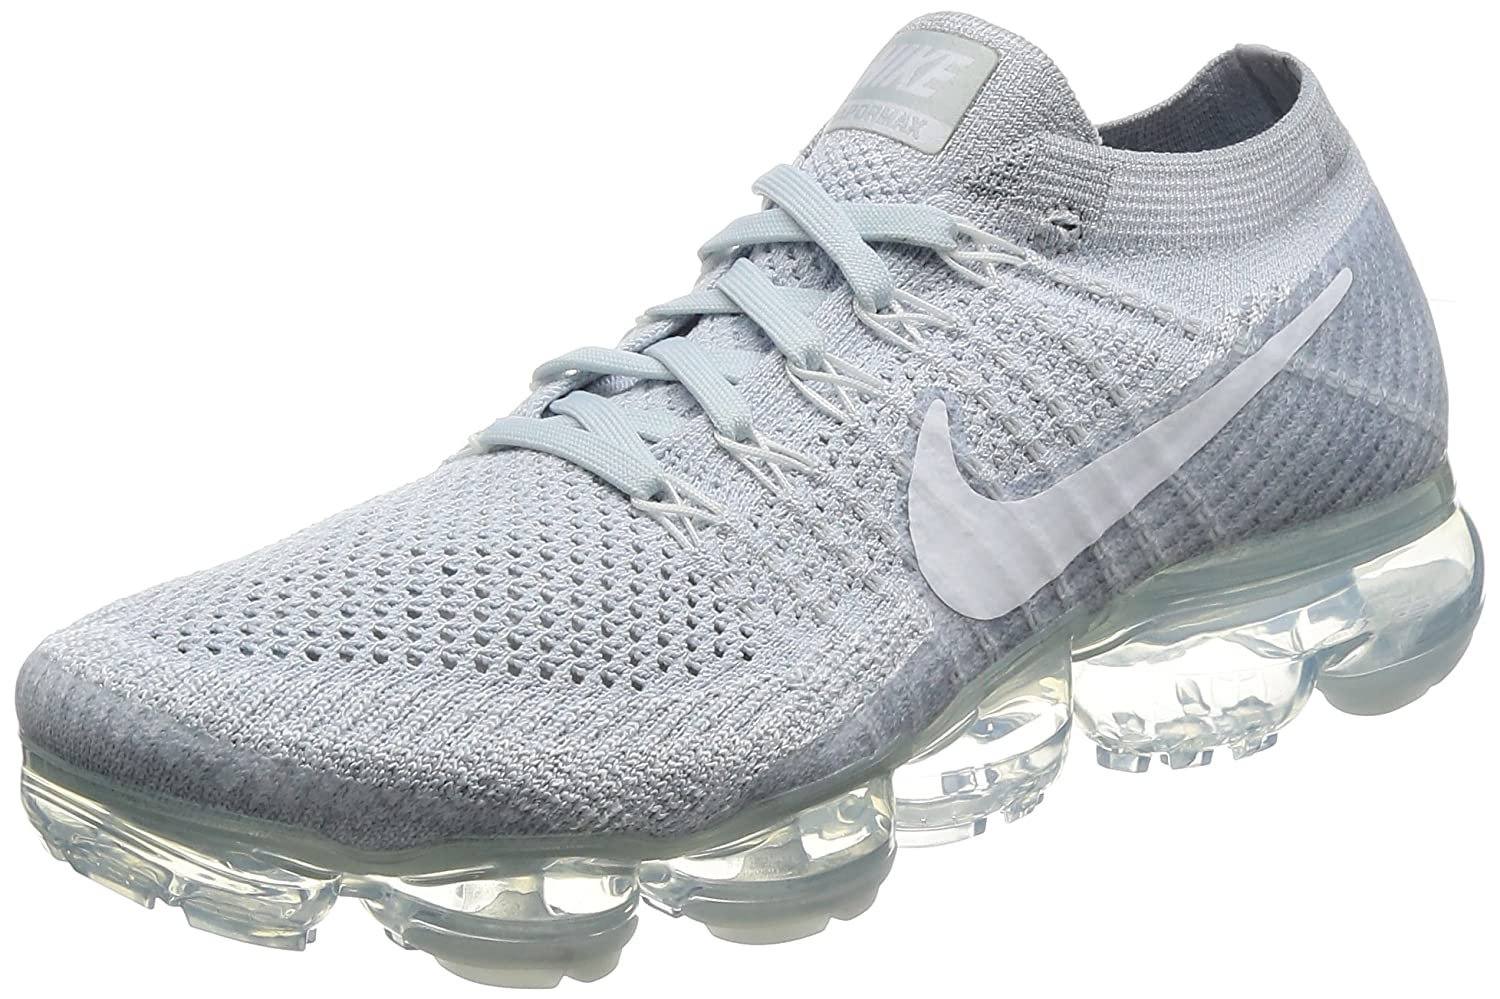 best cheap 3b1d2 9a0f3 Amazon.com   Men s Nike Air Vapormax Flyknit Running Shoe   Fashion Sneakers